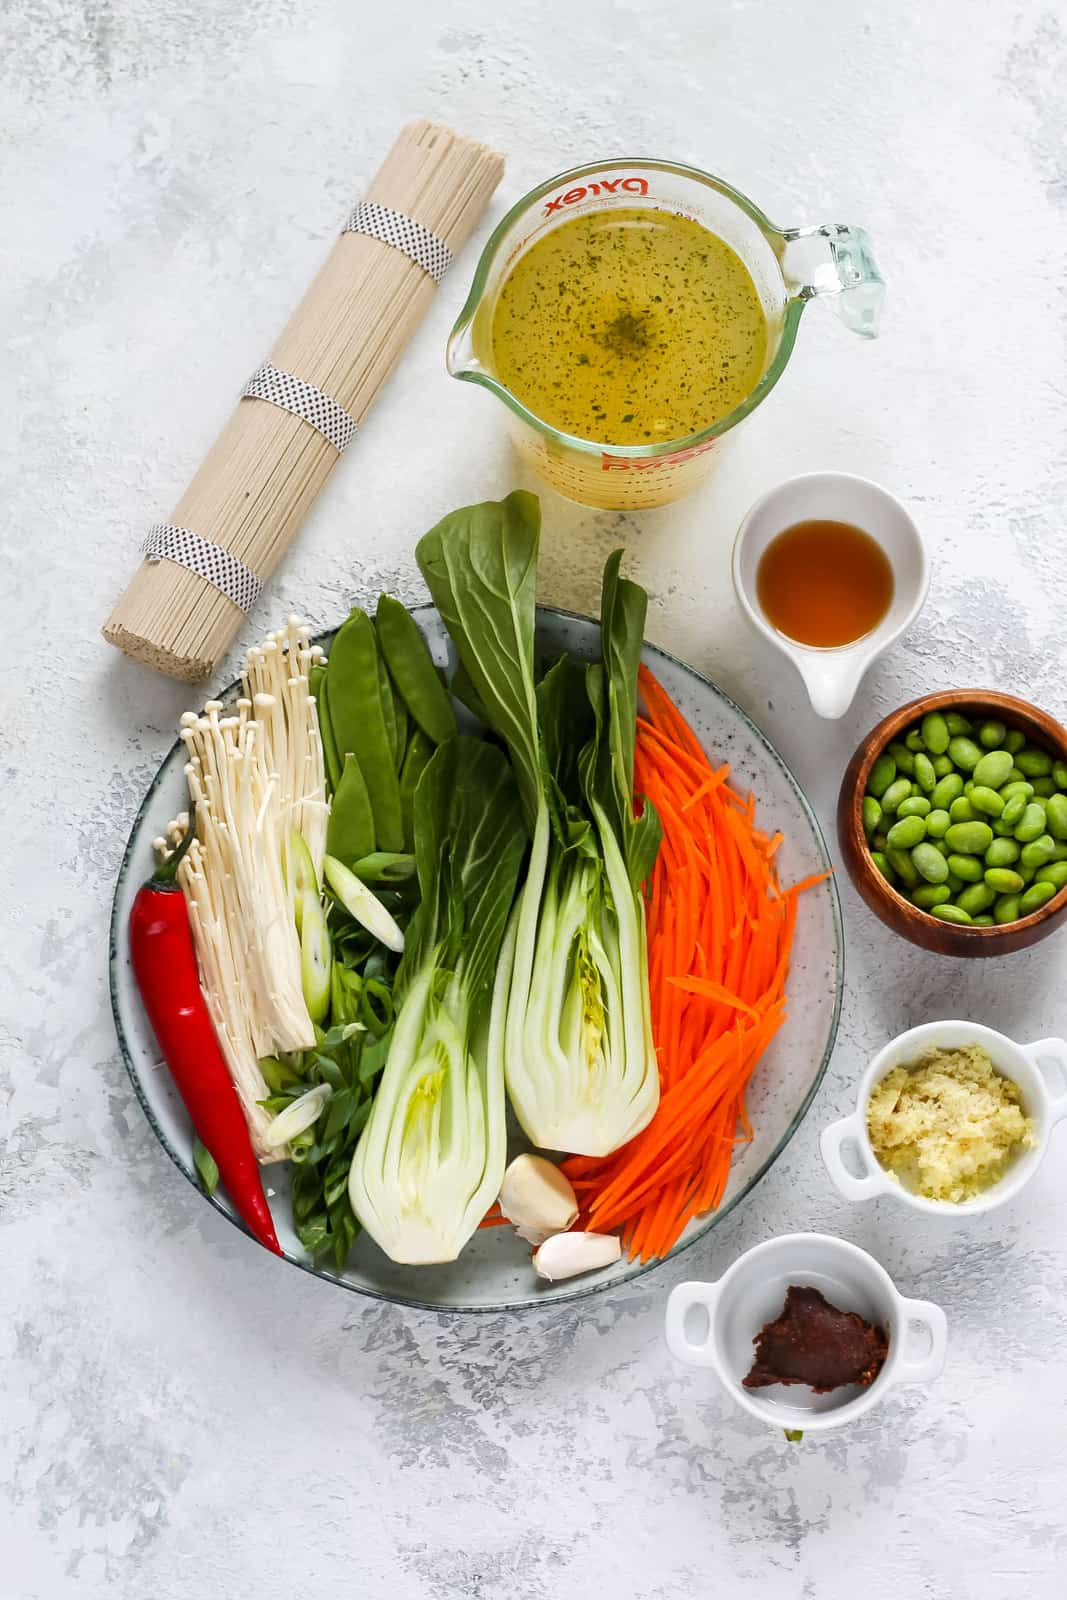 a plate of sliced vegetables, a bunch of ramen noodles, miso, vegetable broth, and edamame on a white background